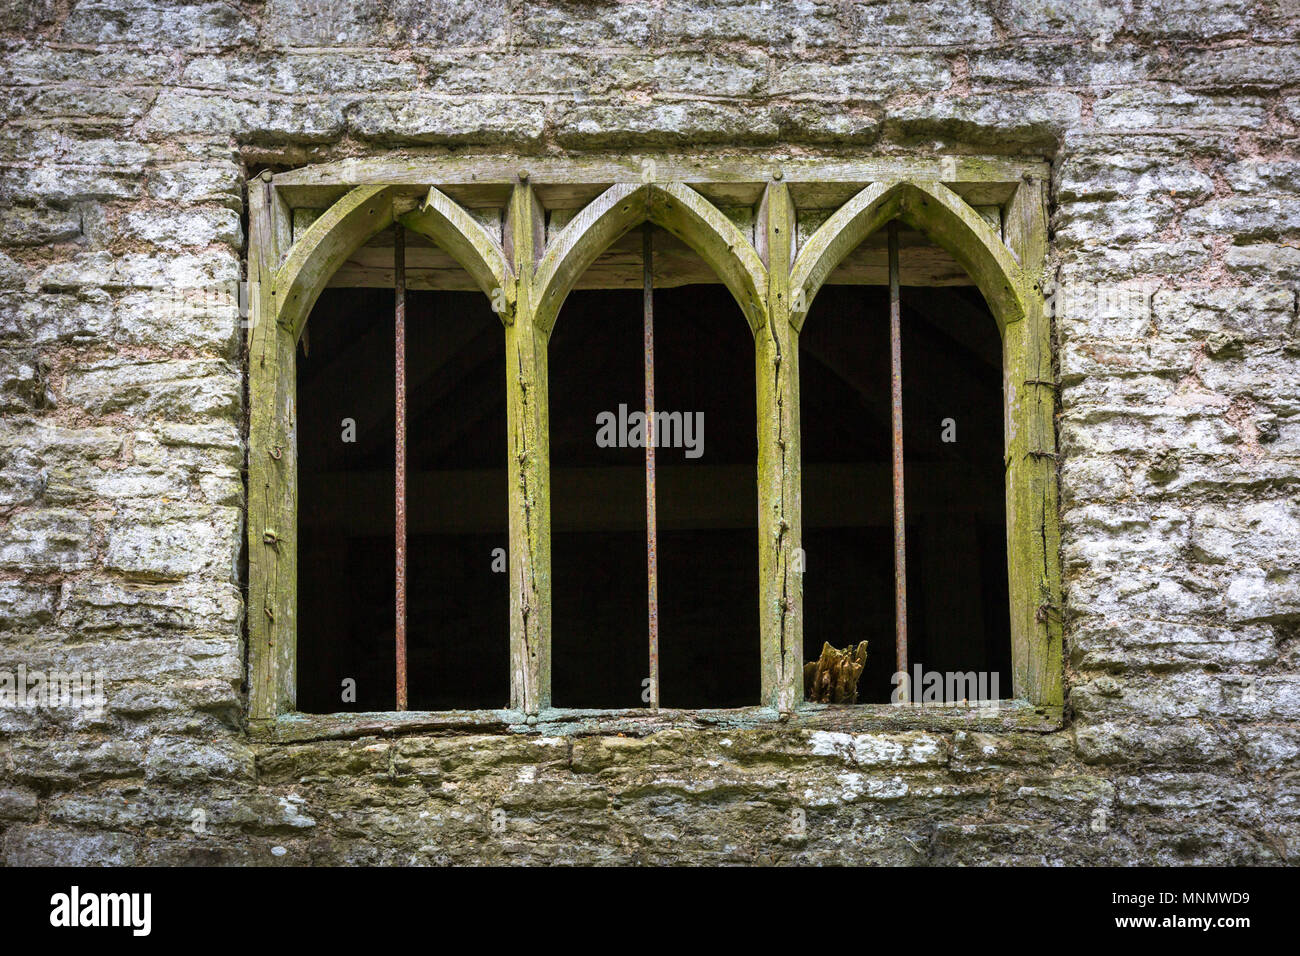 Old wooden or timber mullions window frames in a stone building Stock Photo